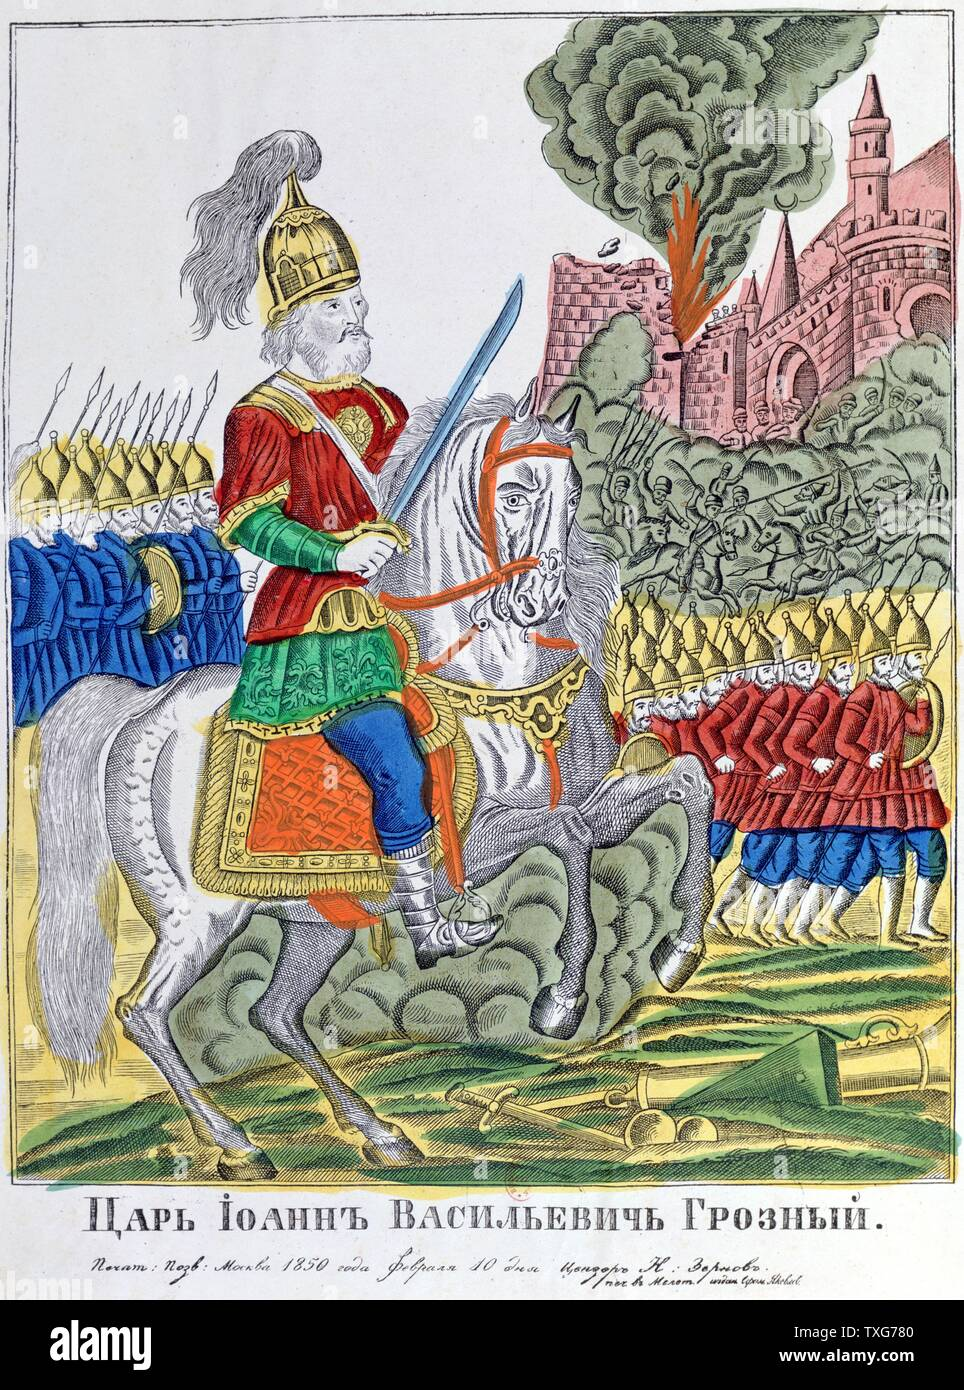 Ivan IV Vasilyevich (Ivan the Terrible) - Tsar of Russia from 1533, leading his army at the Siege of Kazan, August 1552. Ivan, sword in hand, mounted on white charger Lithograph - Stock Image